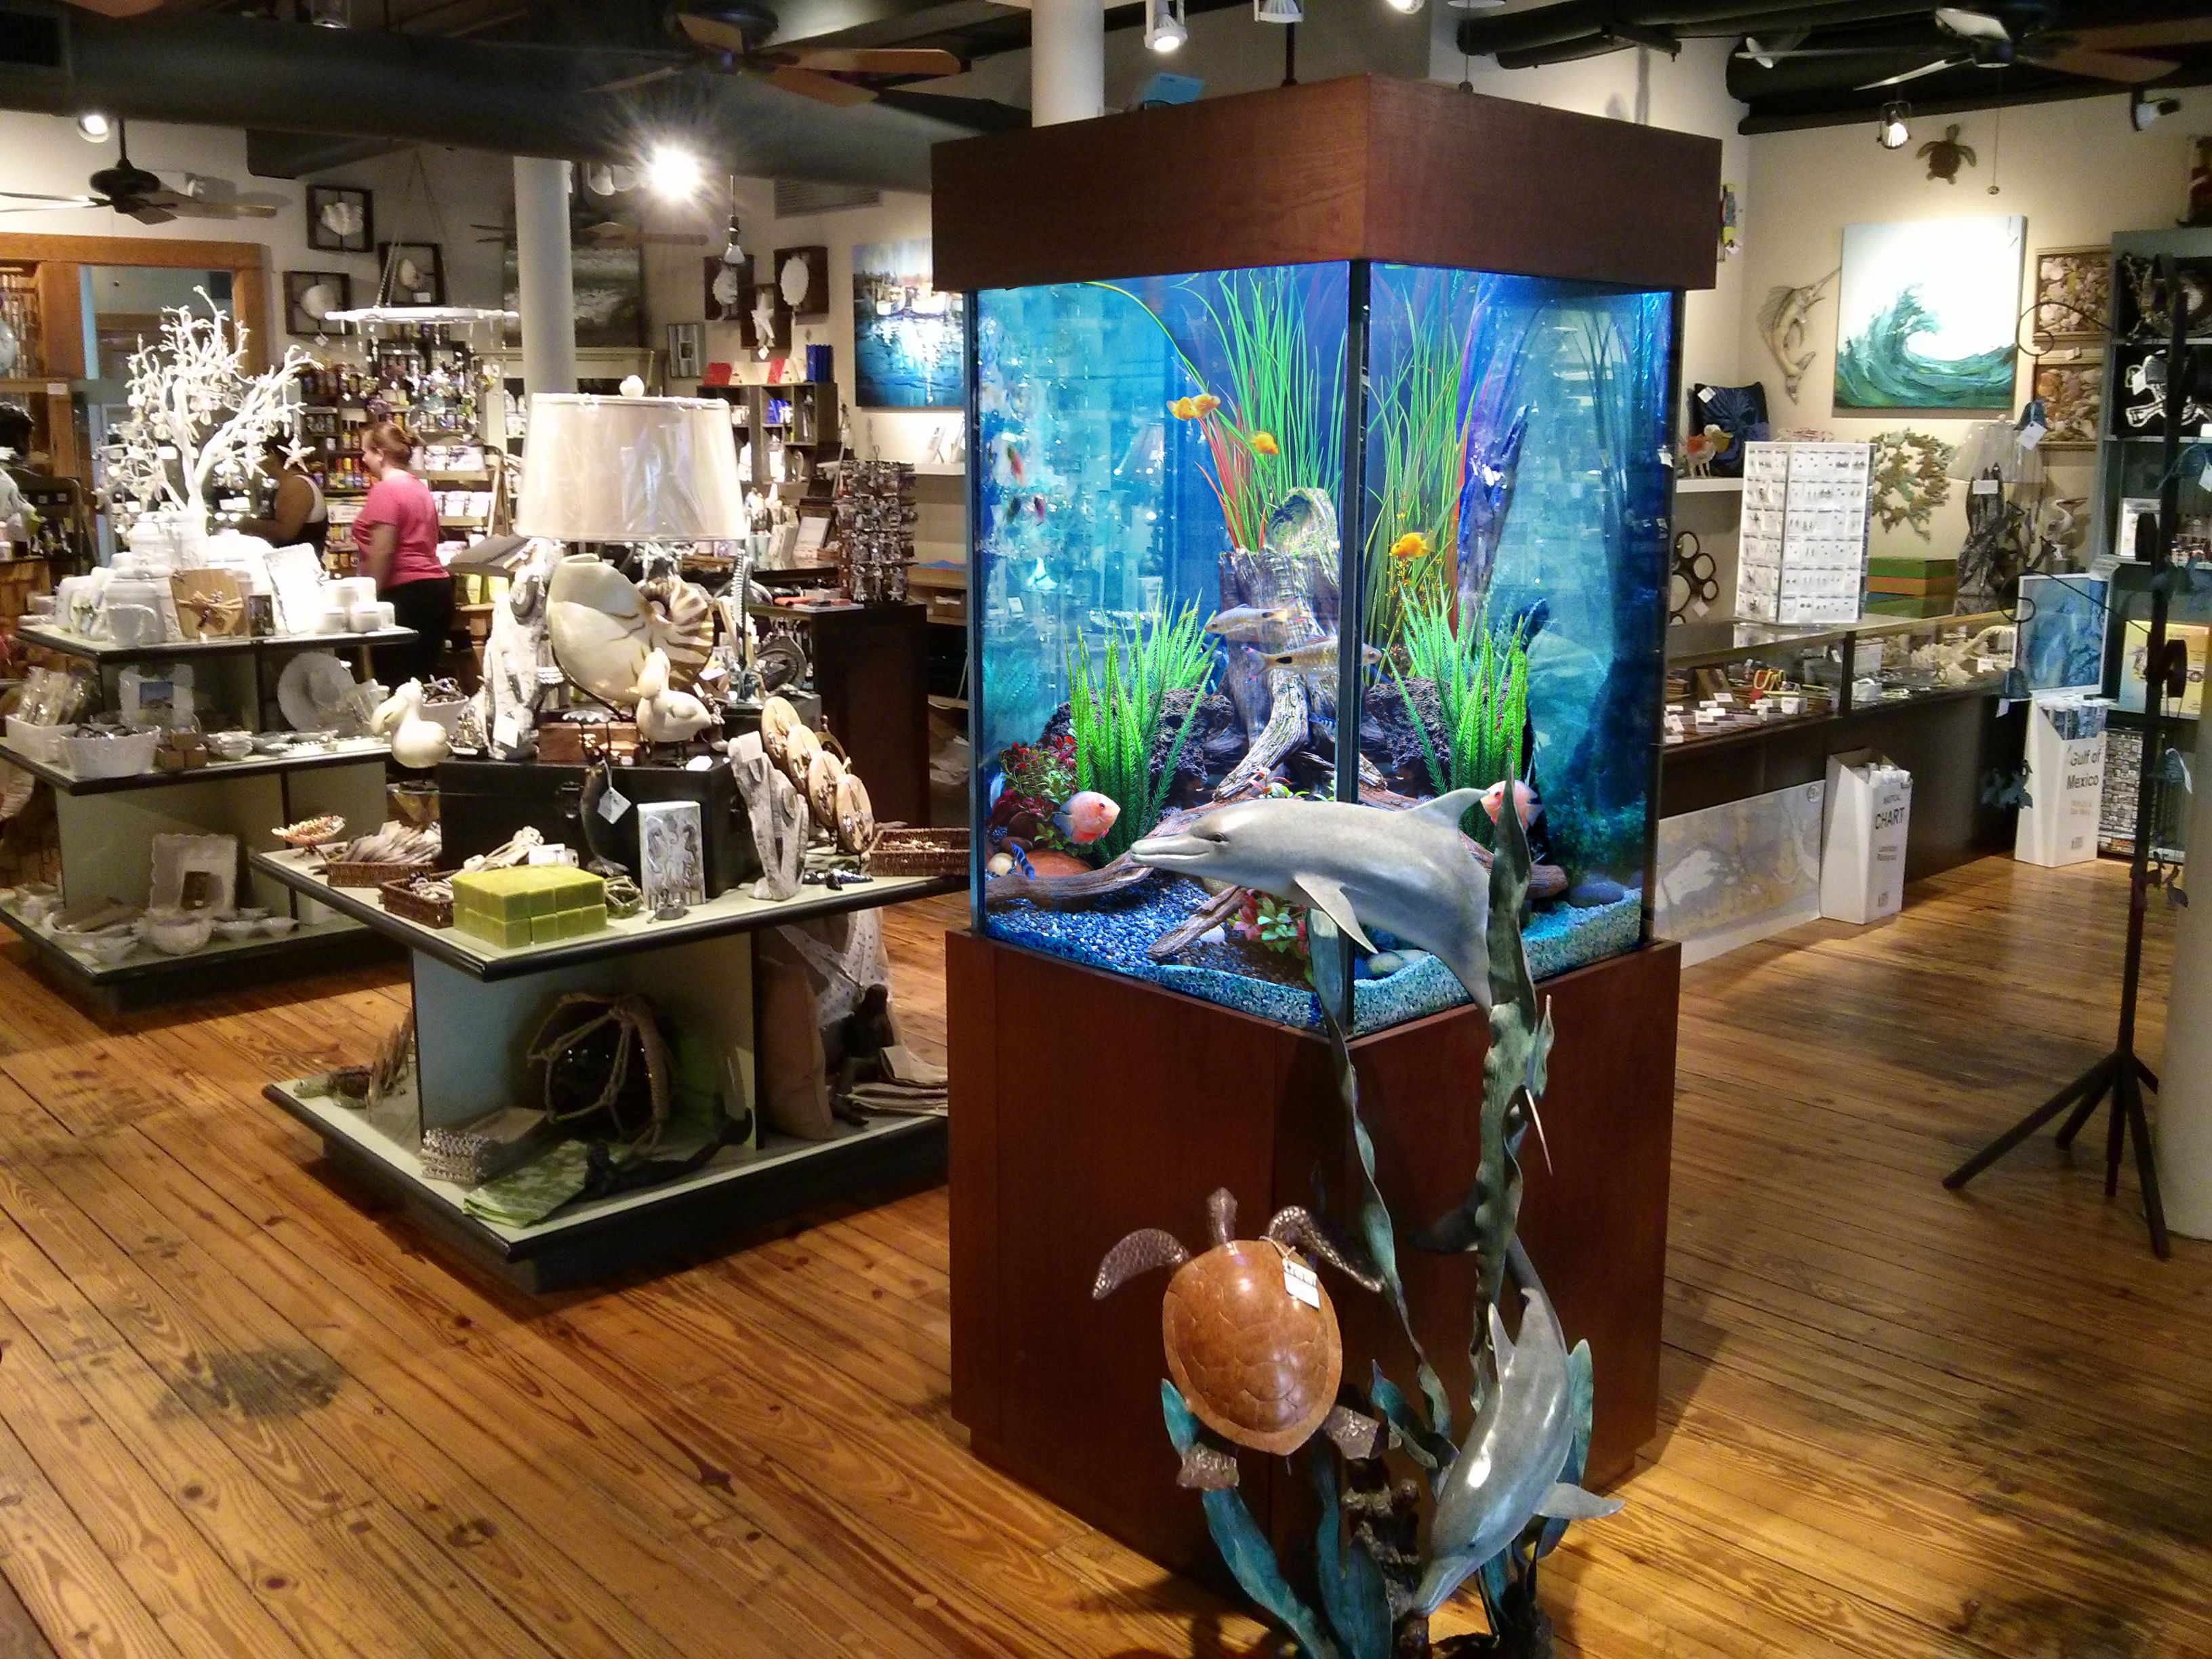 Fish aquarium business - Custom Aquarium At The Admiralty In Galveston Tx By The Fish Gallery